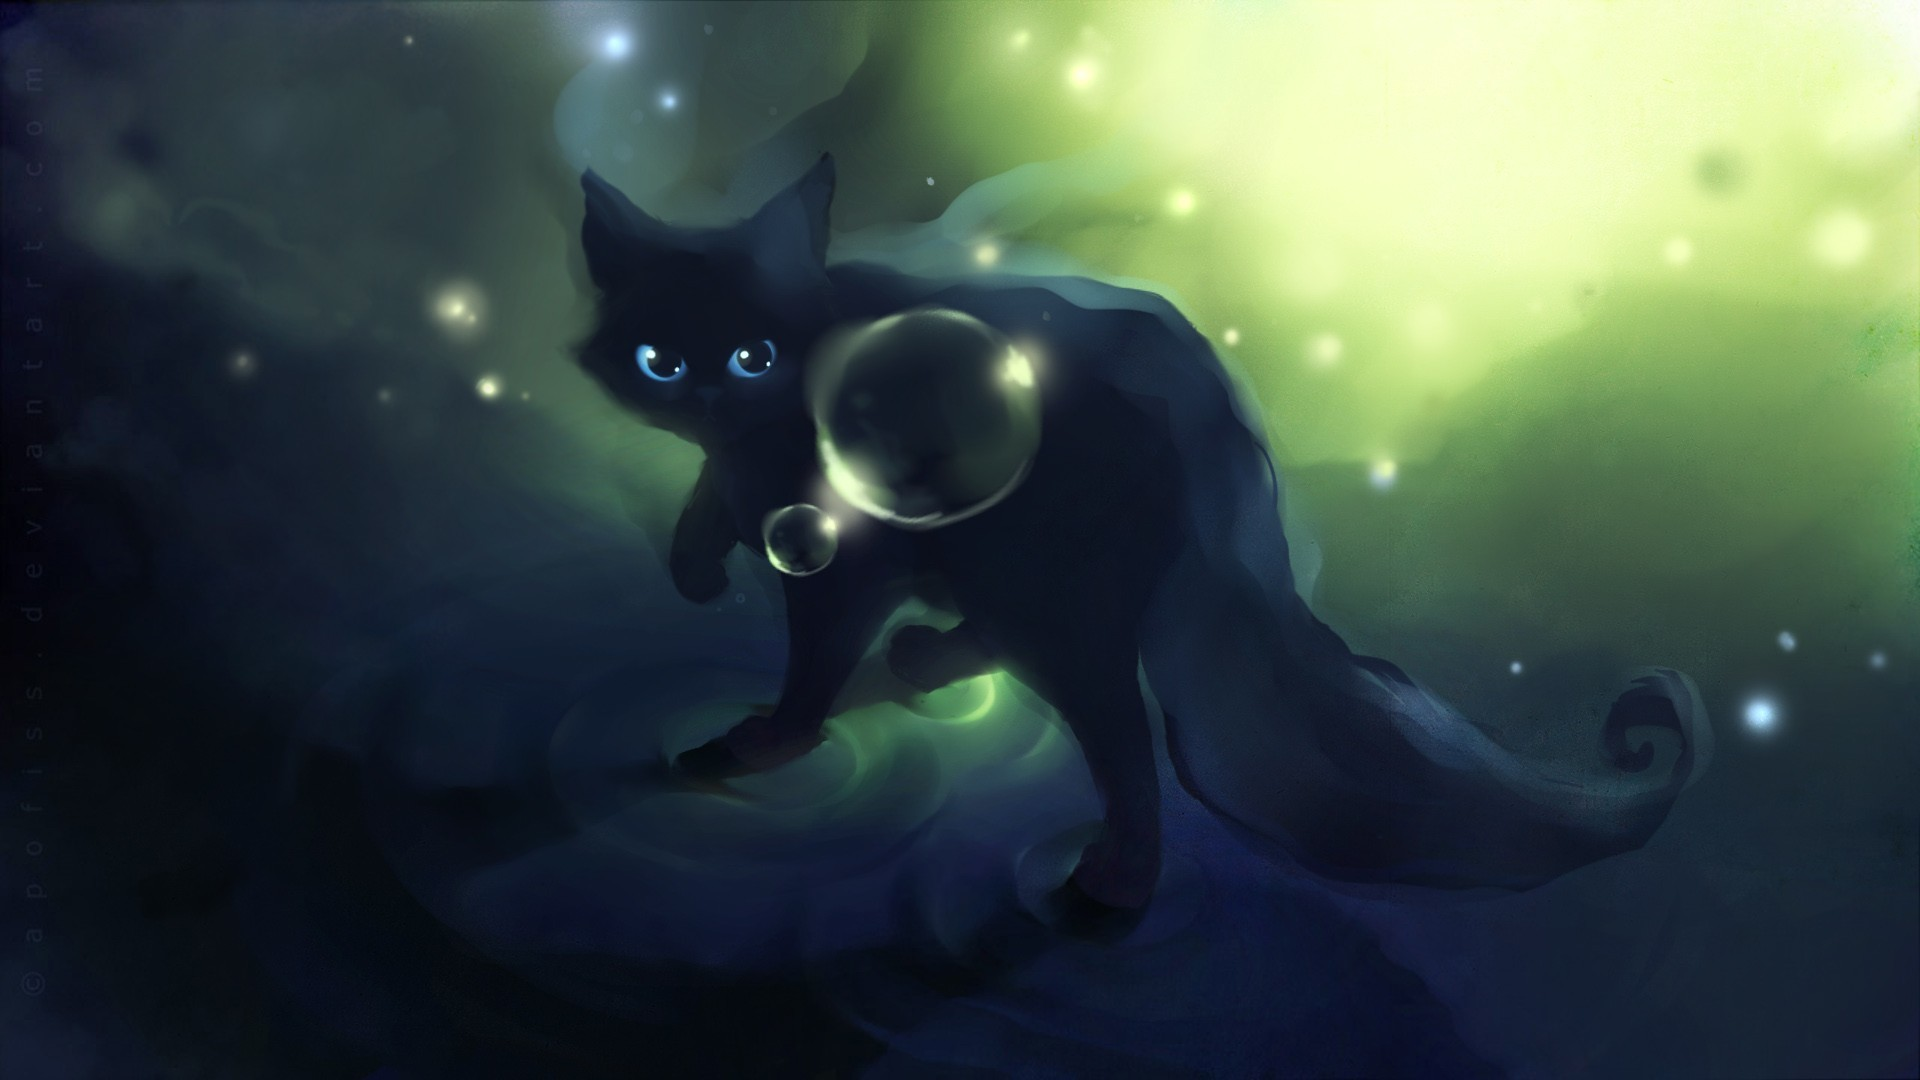 1920x1080 Animals Apofiss Artwork Black Cat Bubbles Cats DeviantART